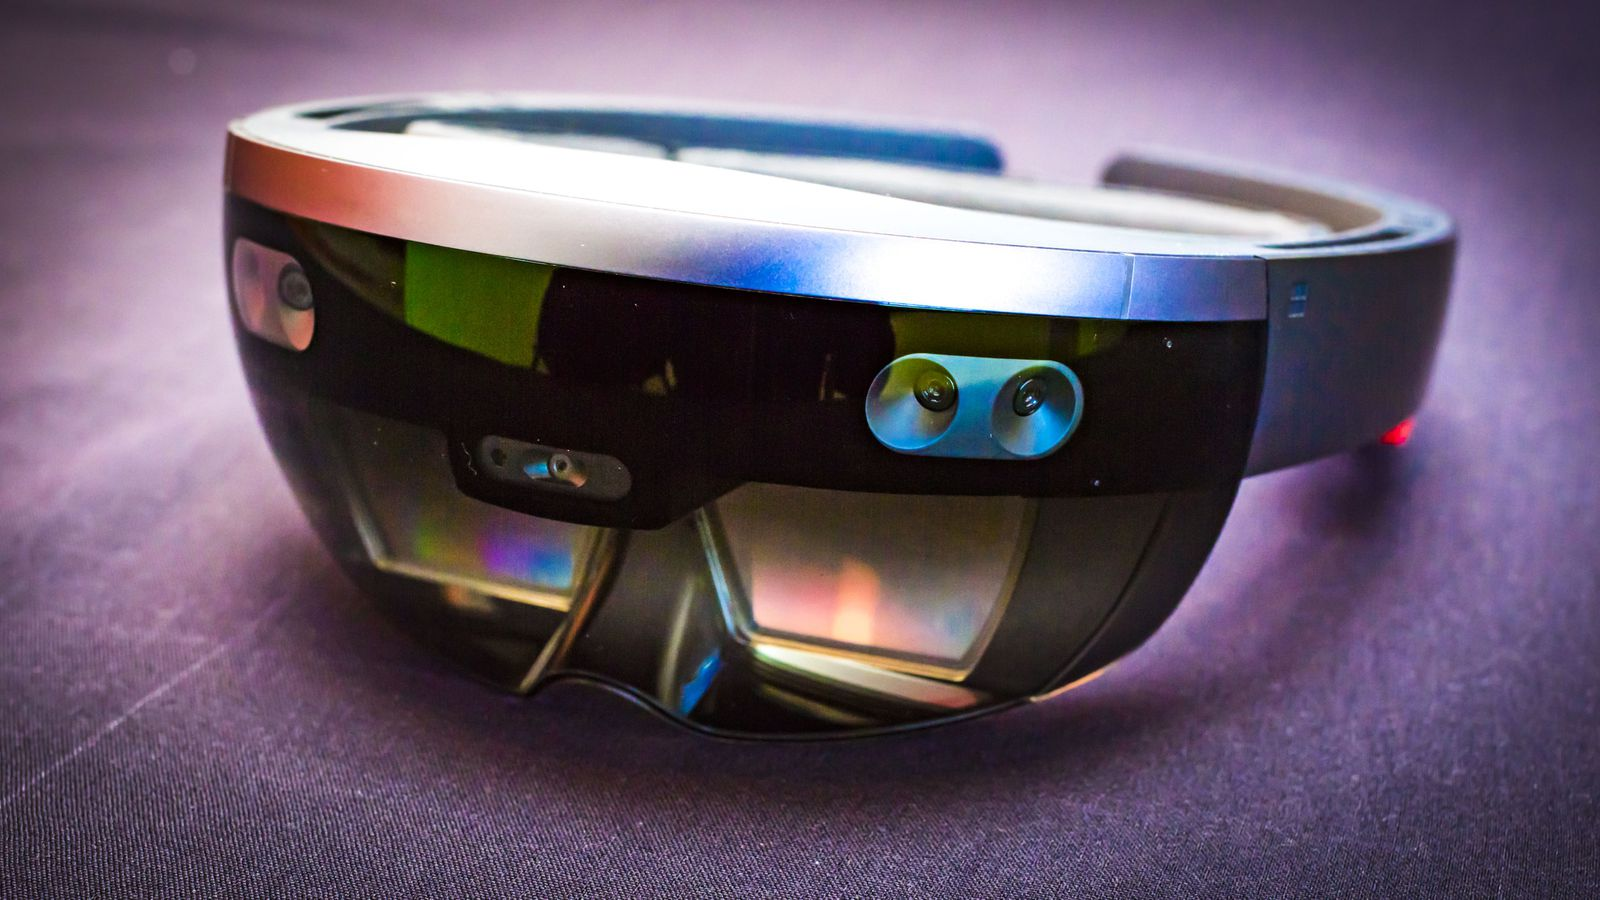 Microsoft gears up for Mobile World Congress with a new HoloLens 2 teaser